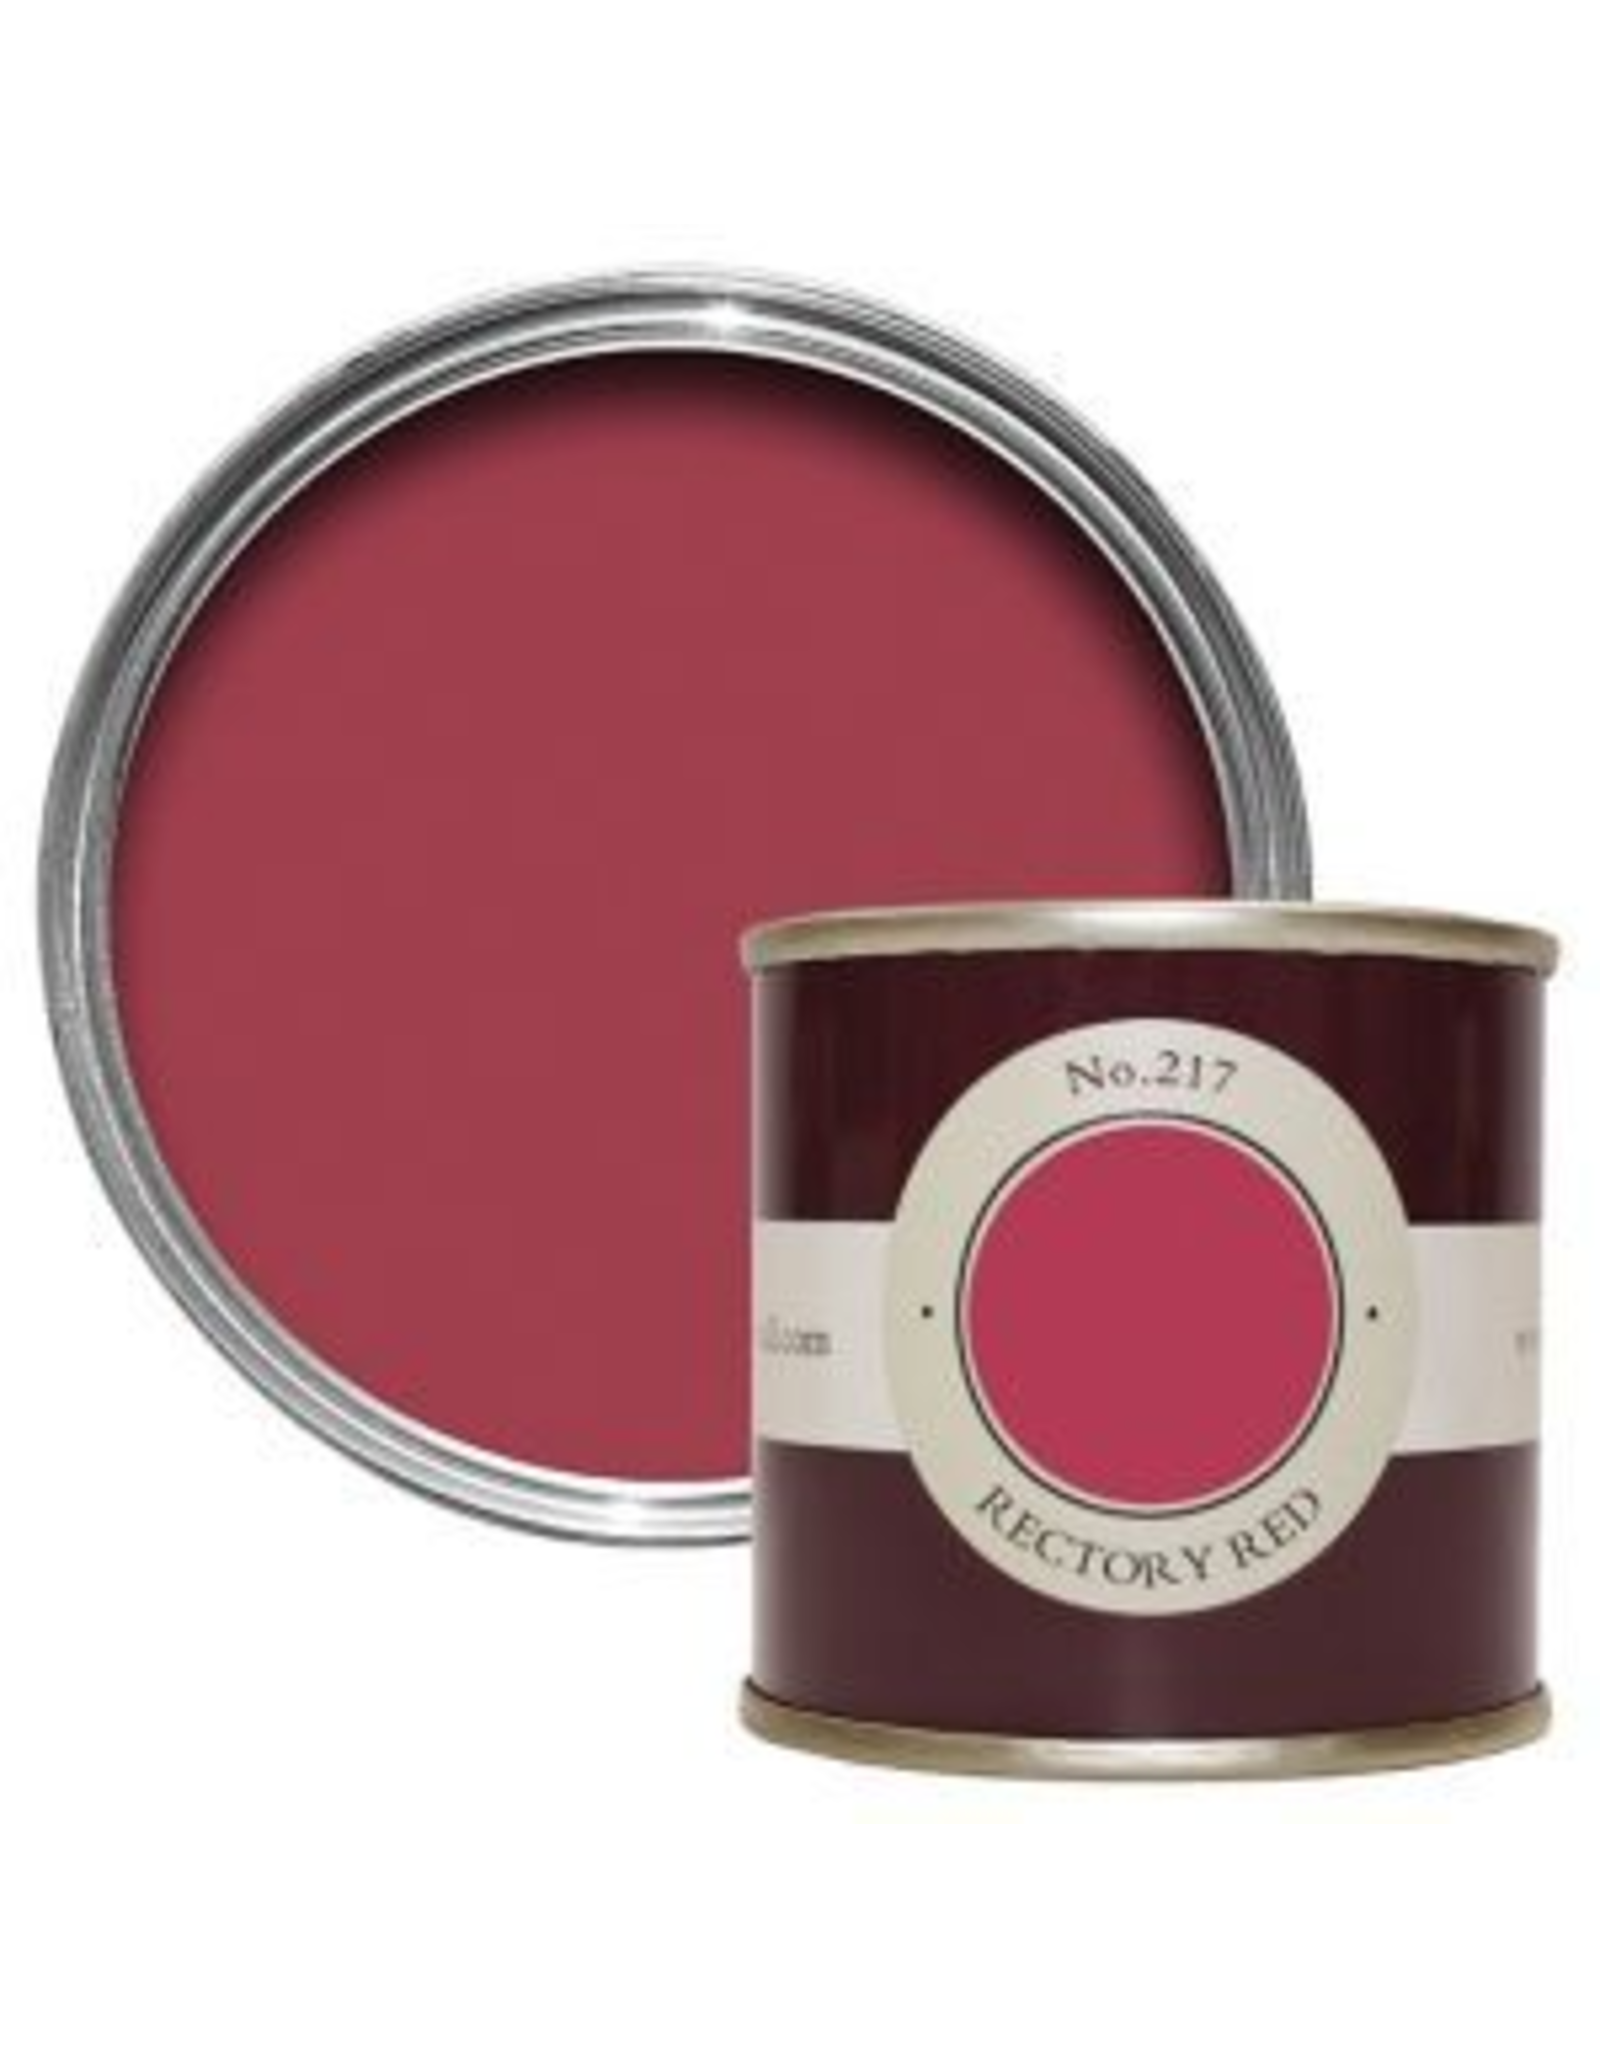 Farrow and Ball 100ml Sample Pot Rectory Red No. 217